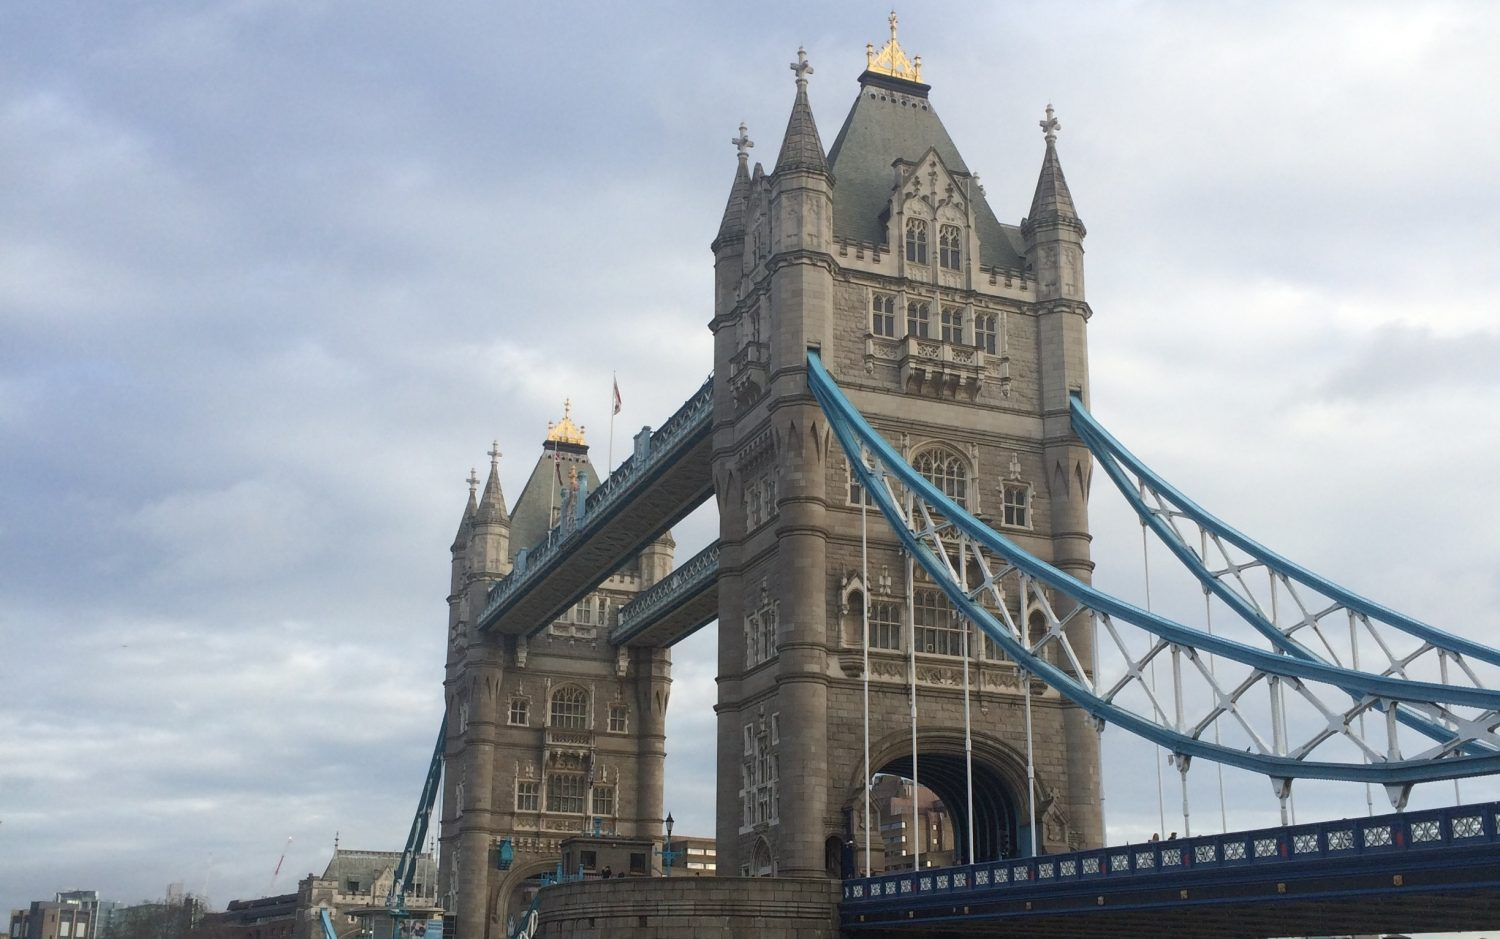 Jour 3 et 4 à Londres : Tower Bridge, Camden, Winter Wonderland…